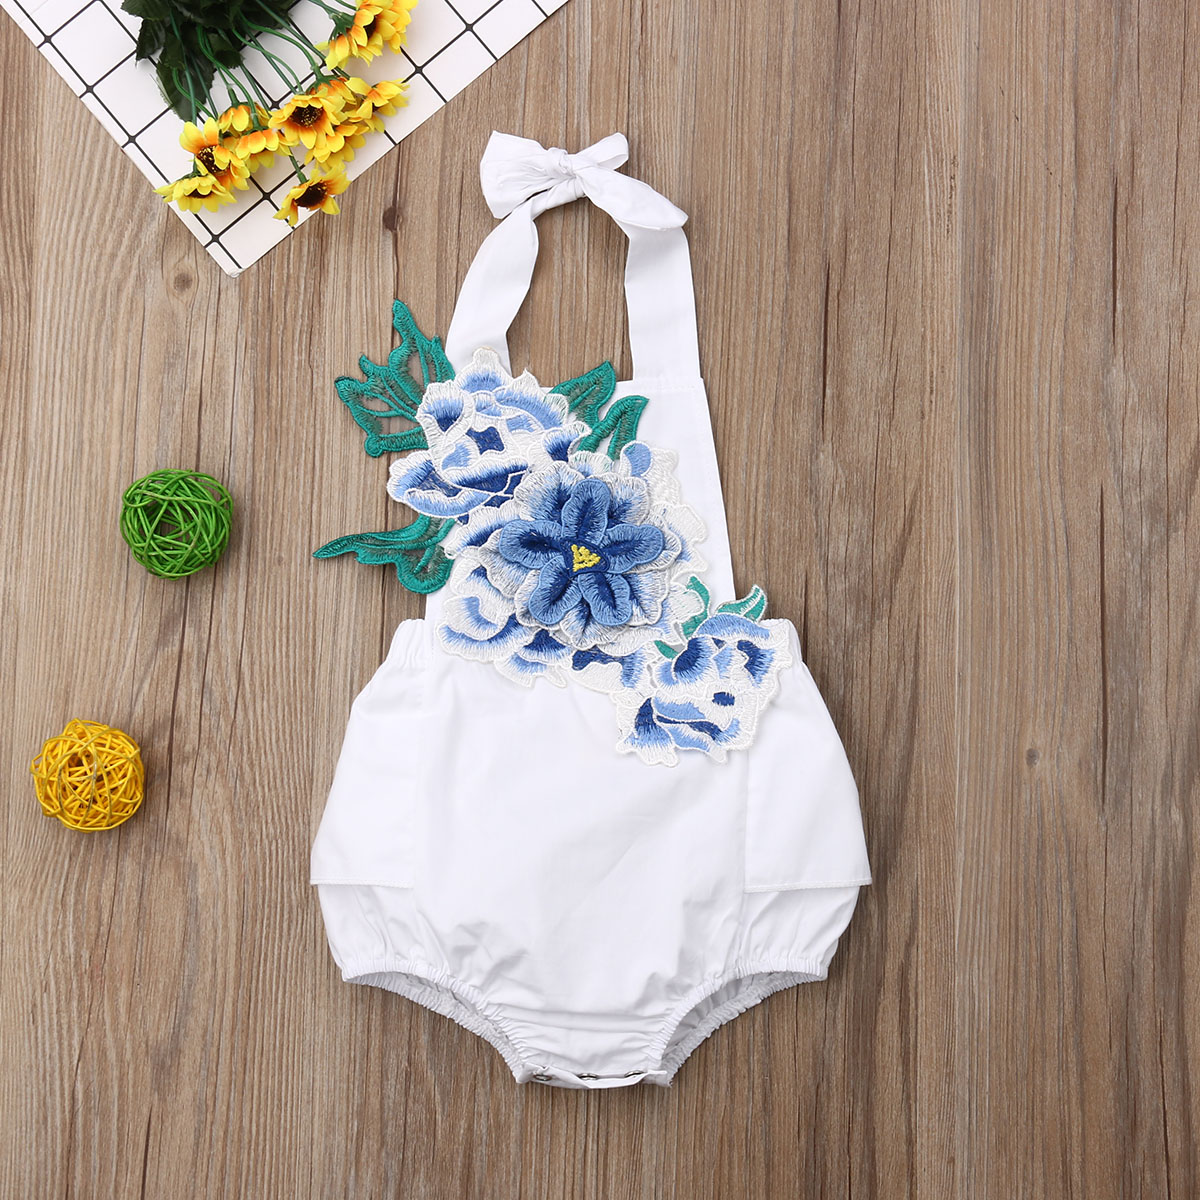 Newest Fashion Newborn Cute Baby Girl Sleeveless Floral Orchid Embroidery White Backless Jumpsuit Bodysuit Sunsuit 3-24Months